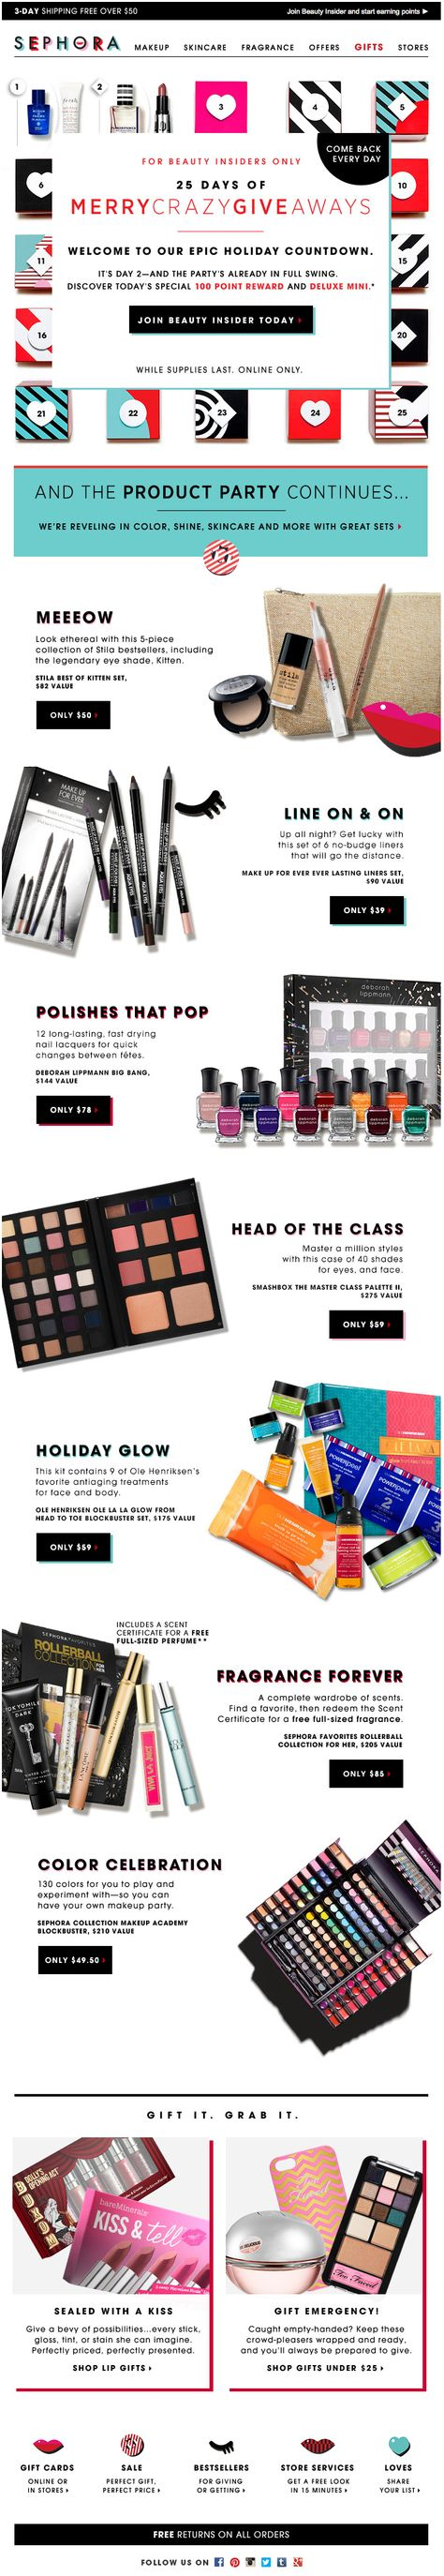 Sephora : Days Of Gifts